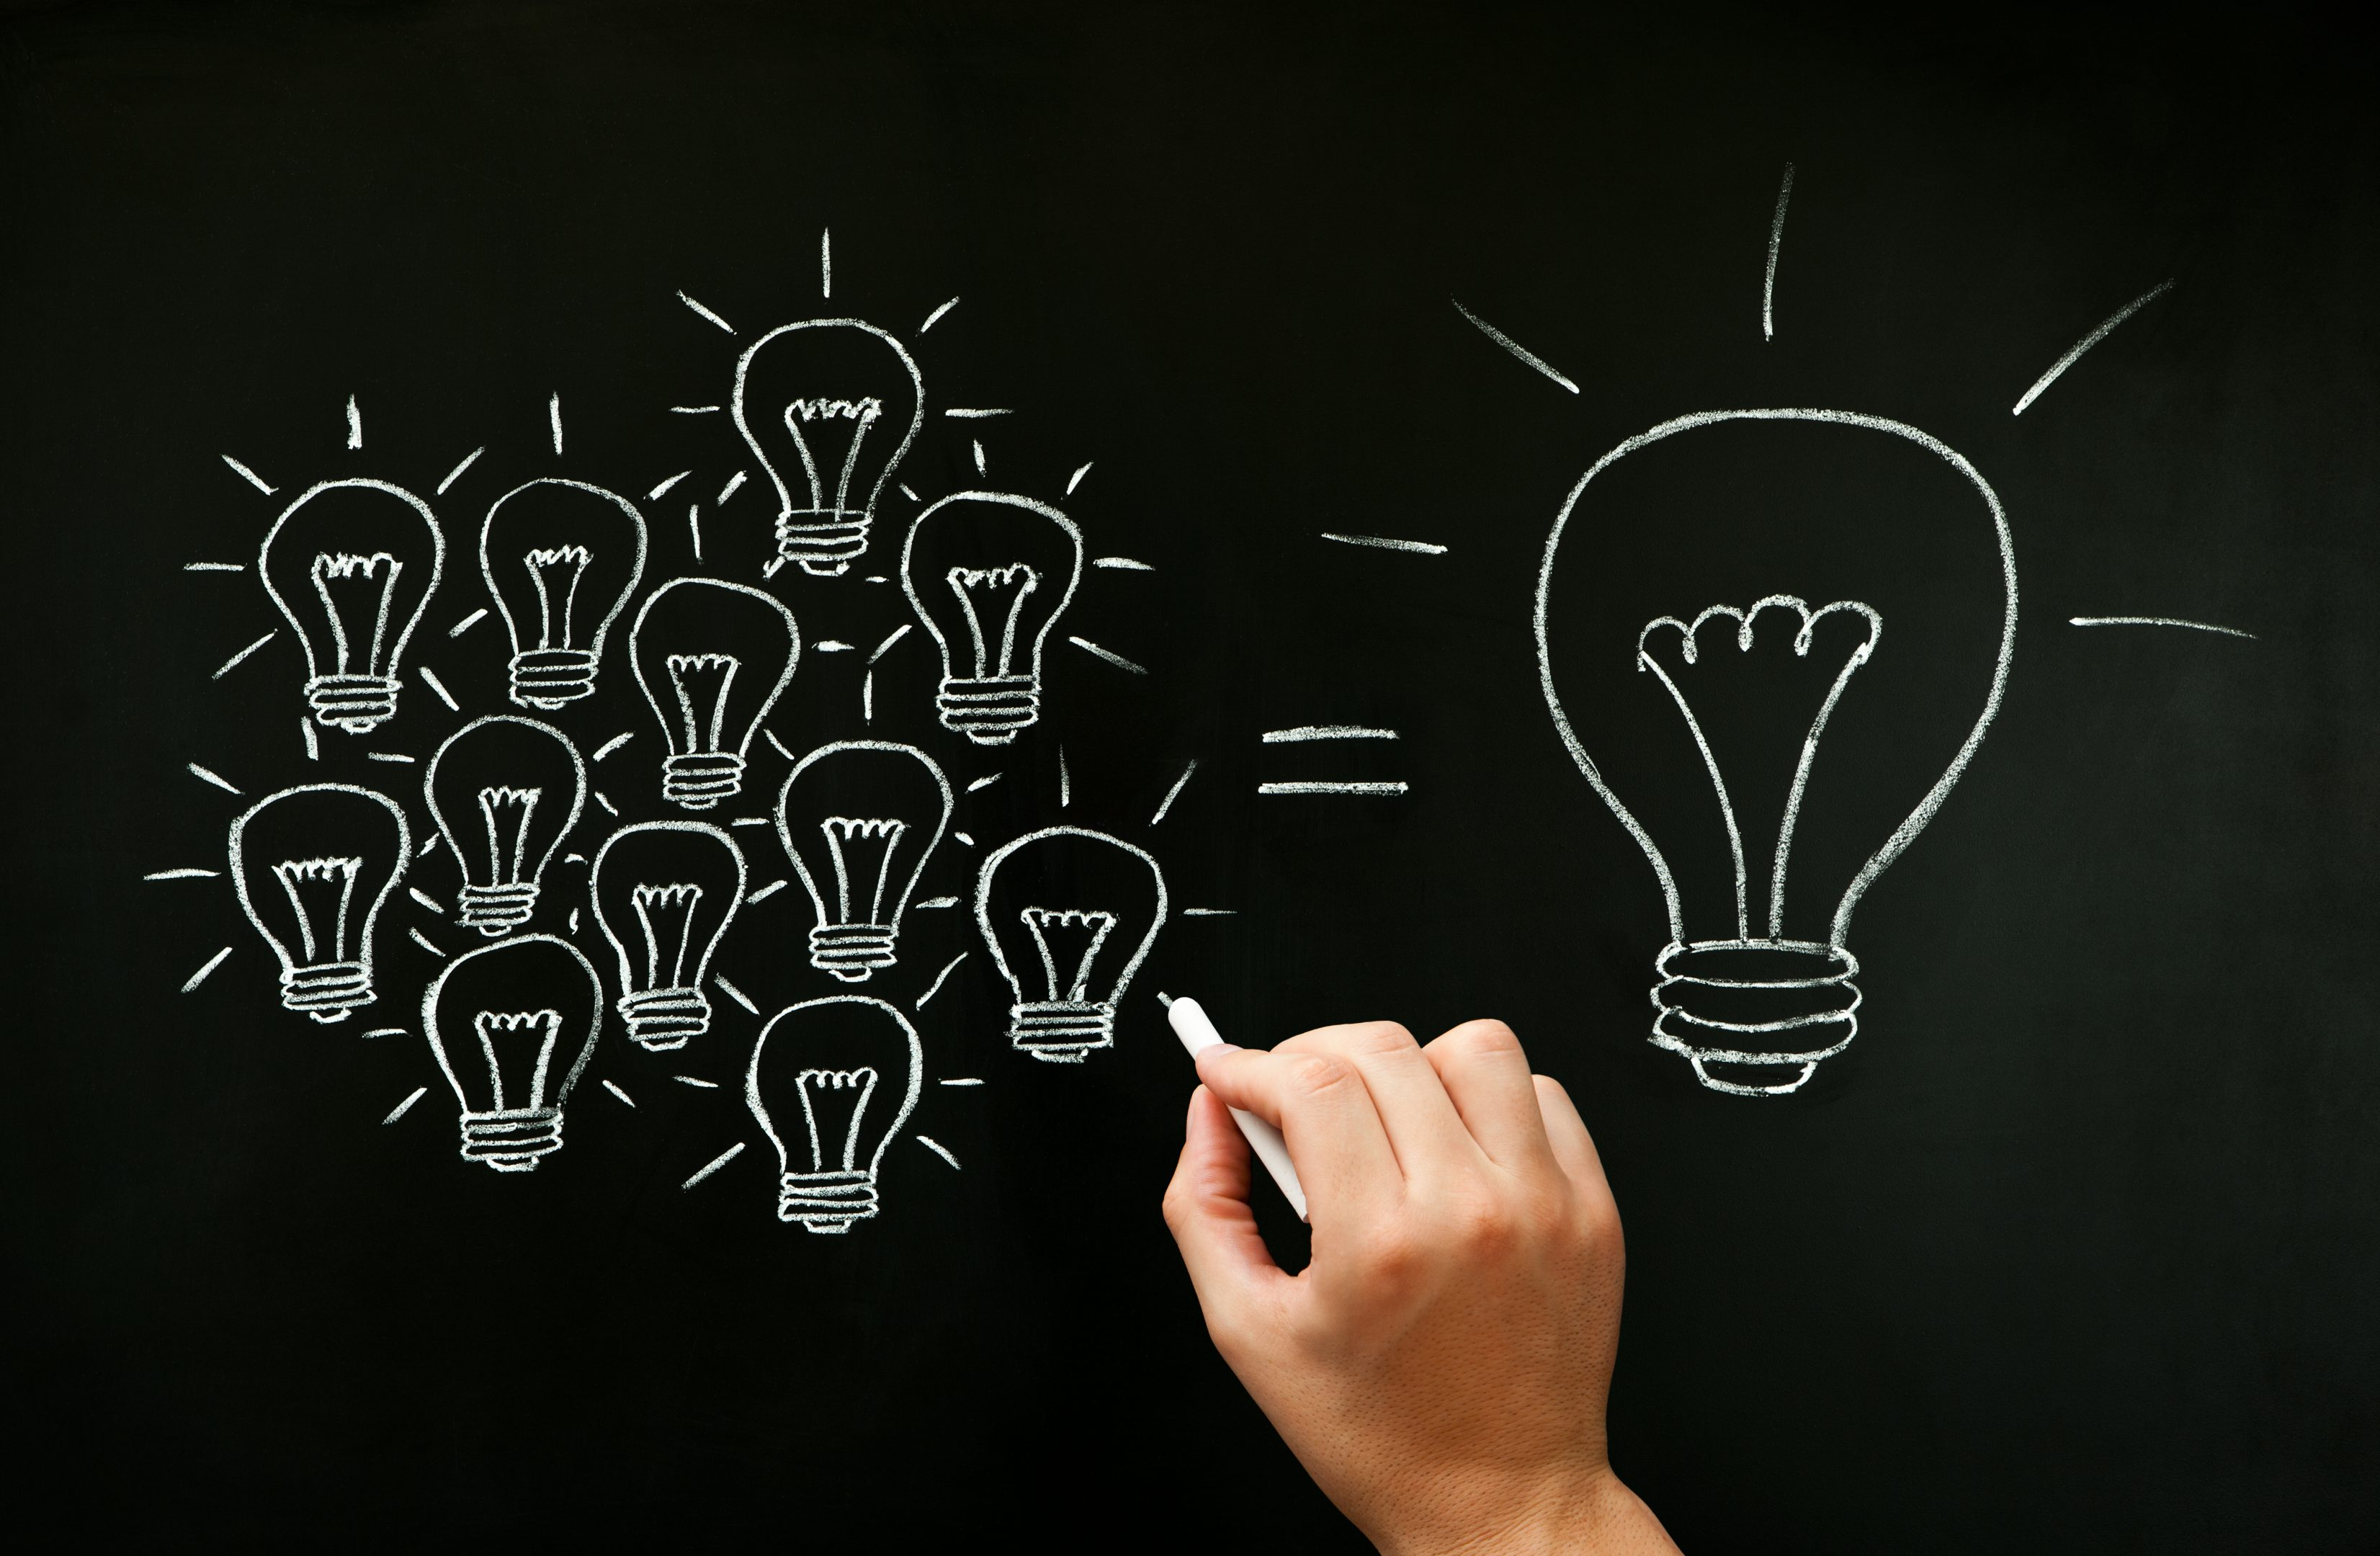 Hand drawing with chalk on blackboard light bulbs concept illustrating how a team is working together creating a great idea. Many small ideas add up to a big one.